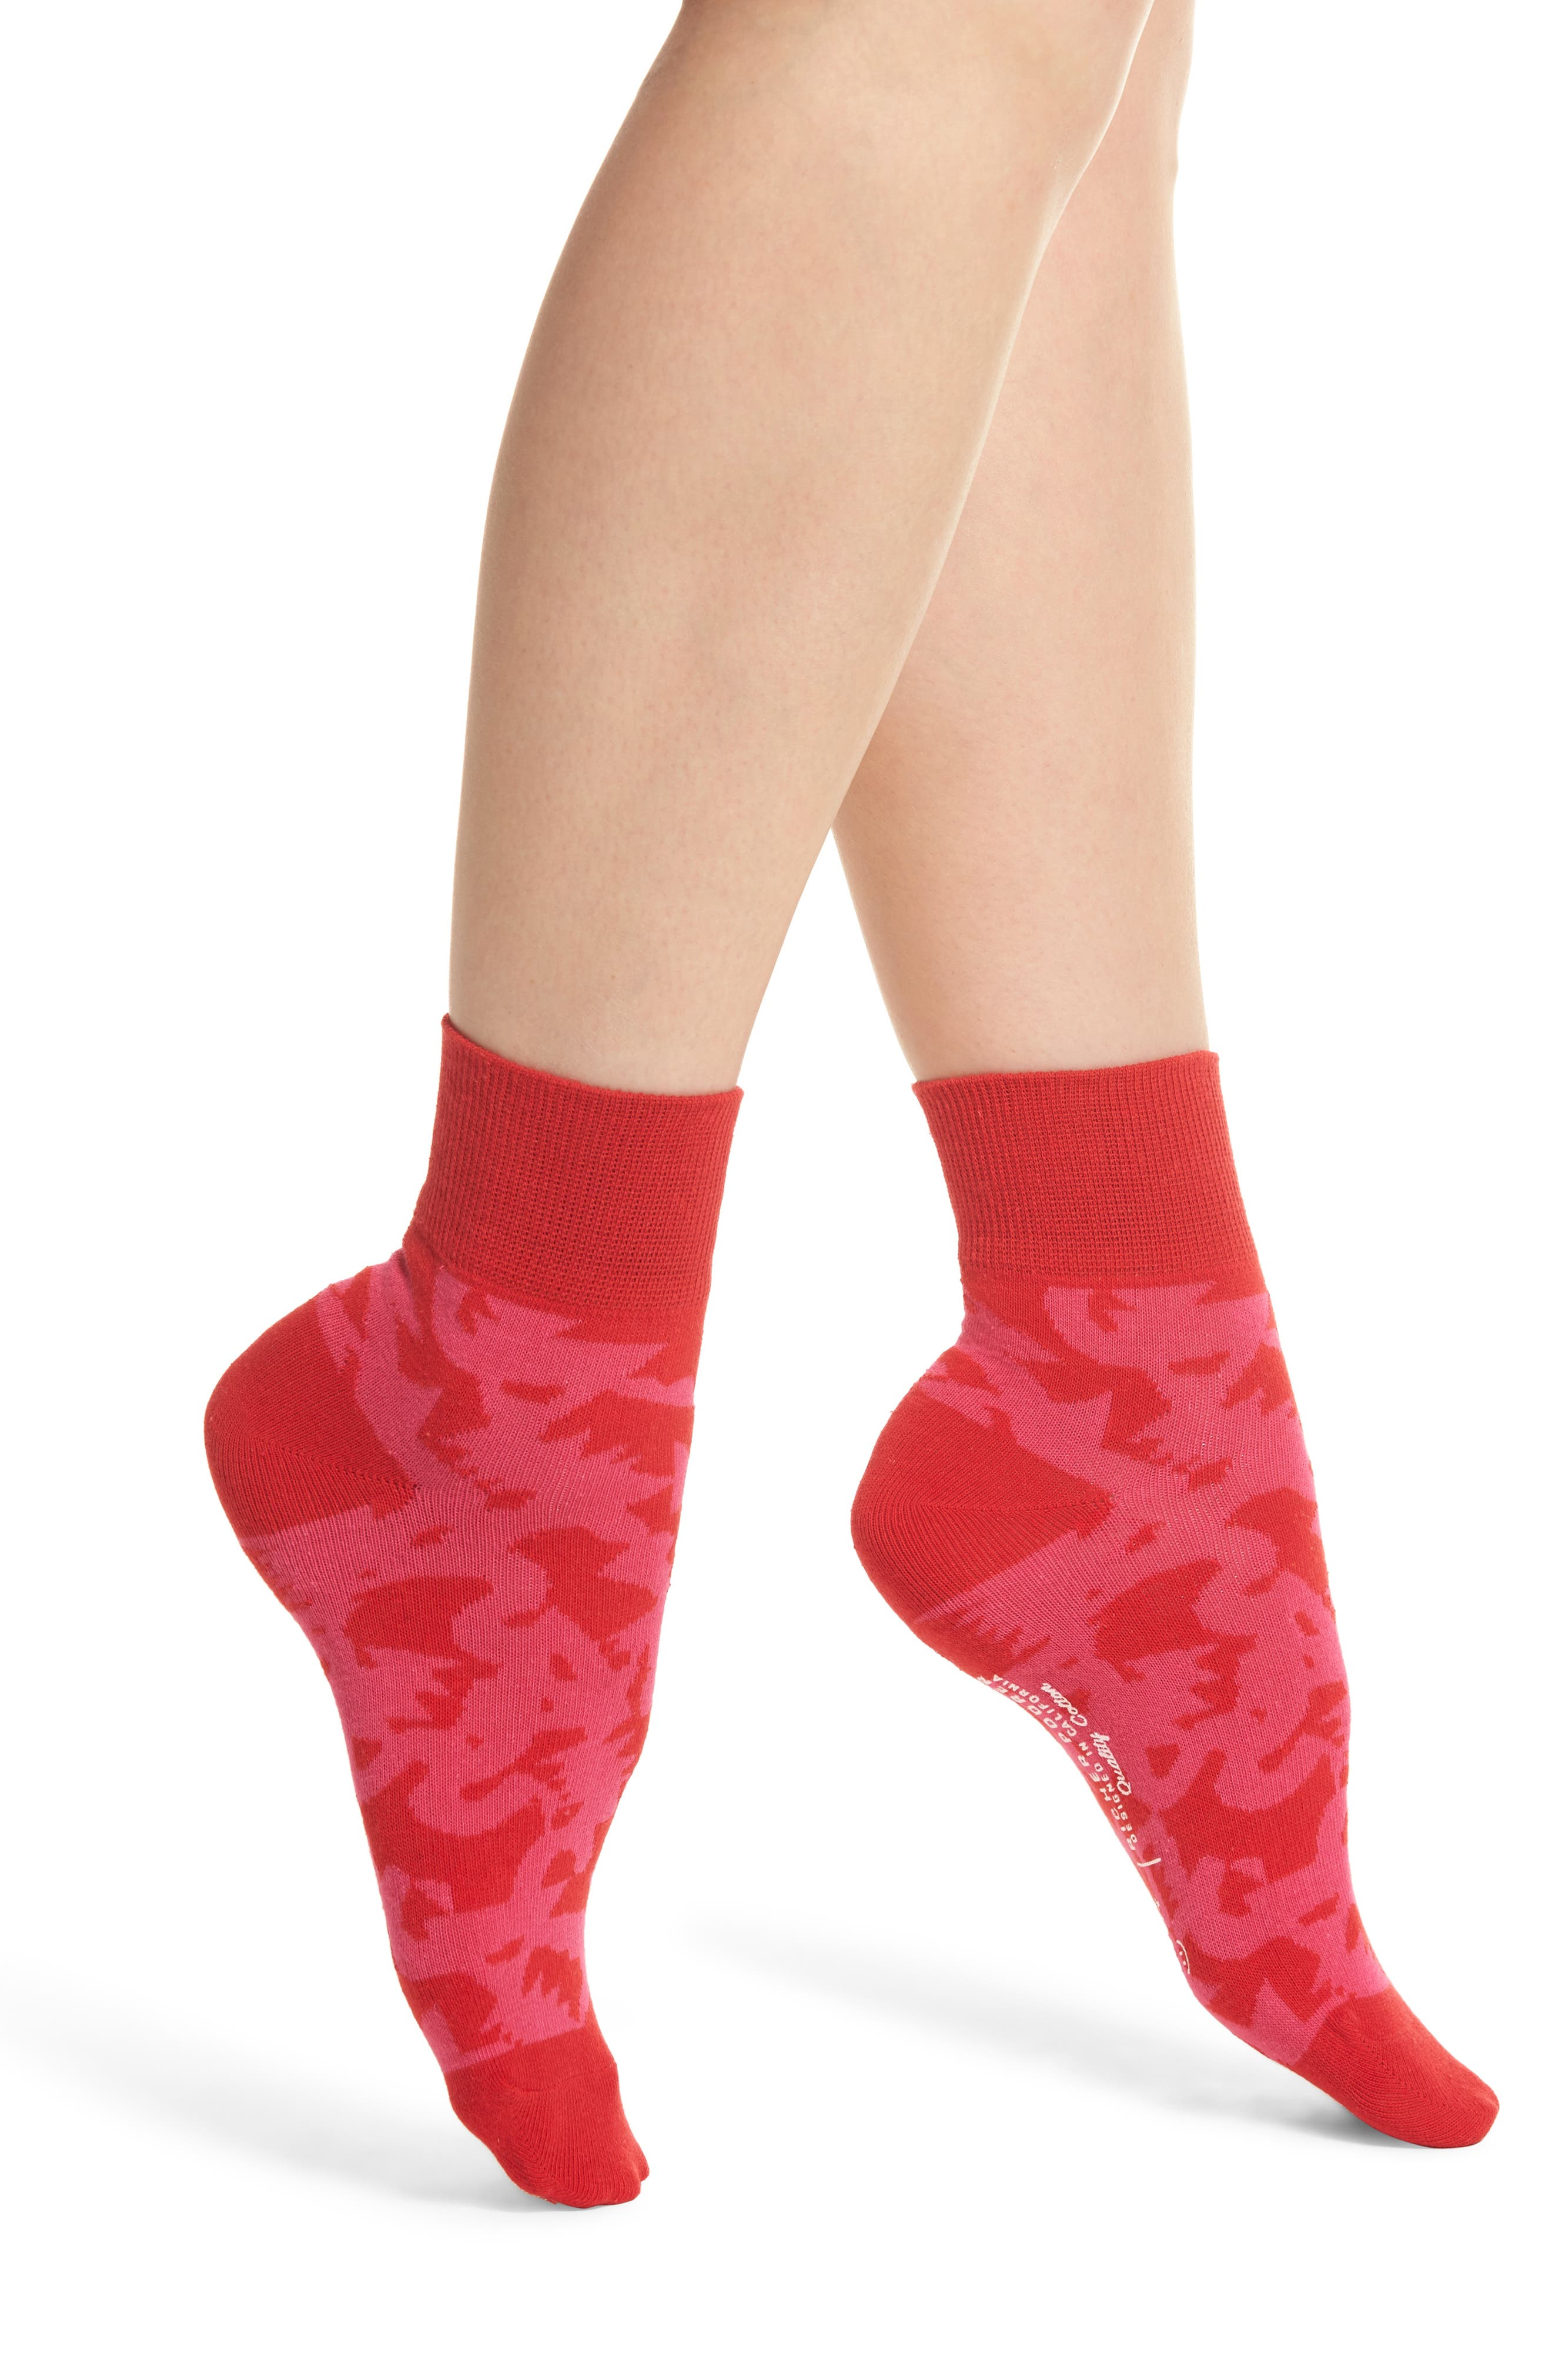 Abstract Will Bryant Socks,                         Main,                         color, Red